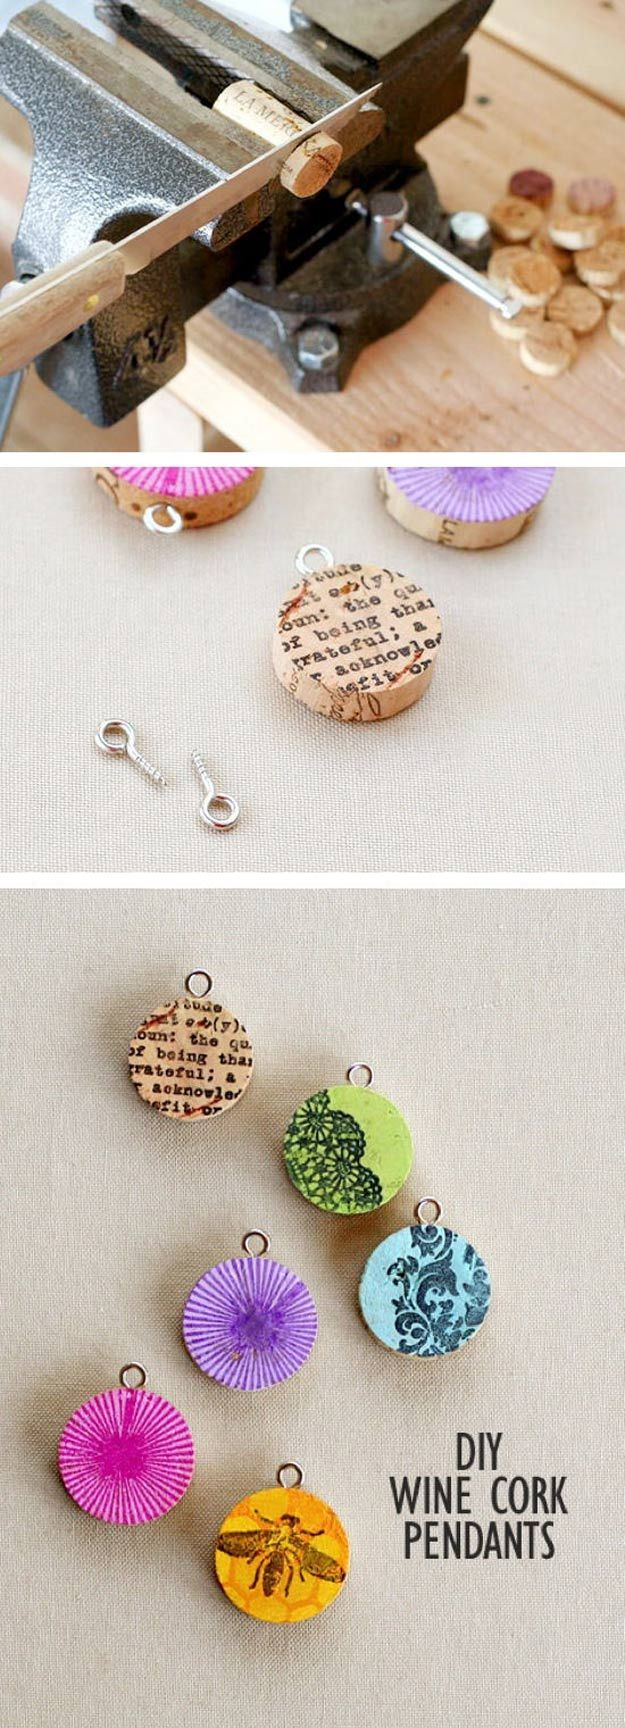 25 best ideas about easy diy on pinterest easy diy for Pinterest do it yourself crafts